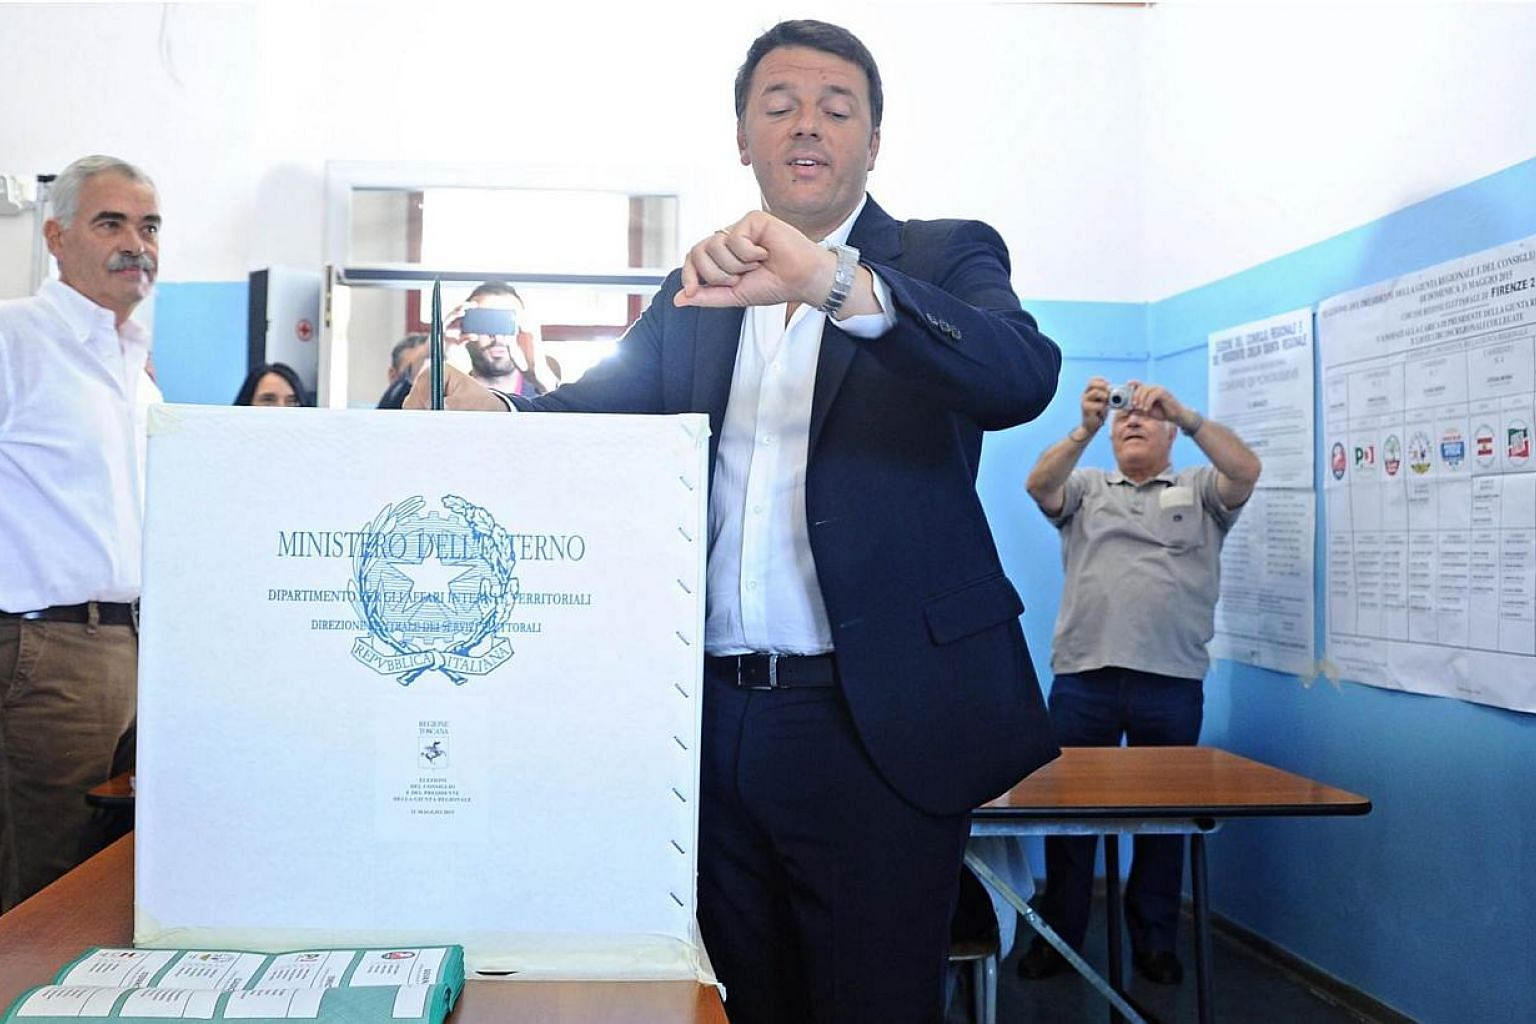 Italian Premier Matteo Renzi casts his ballot at a polling station in Pontassieve, near Florence, Italy, on May 31, 2015.Mr Renzi was left licking his wounds on Monday, June 1, after suffering a setback in regional elections which saw both the